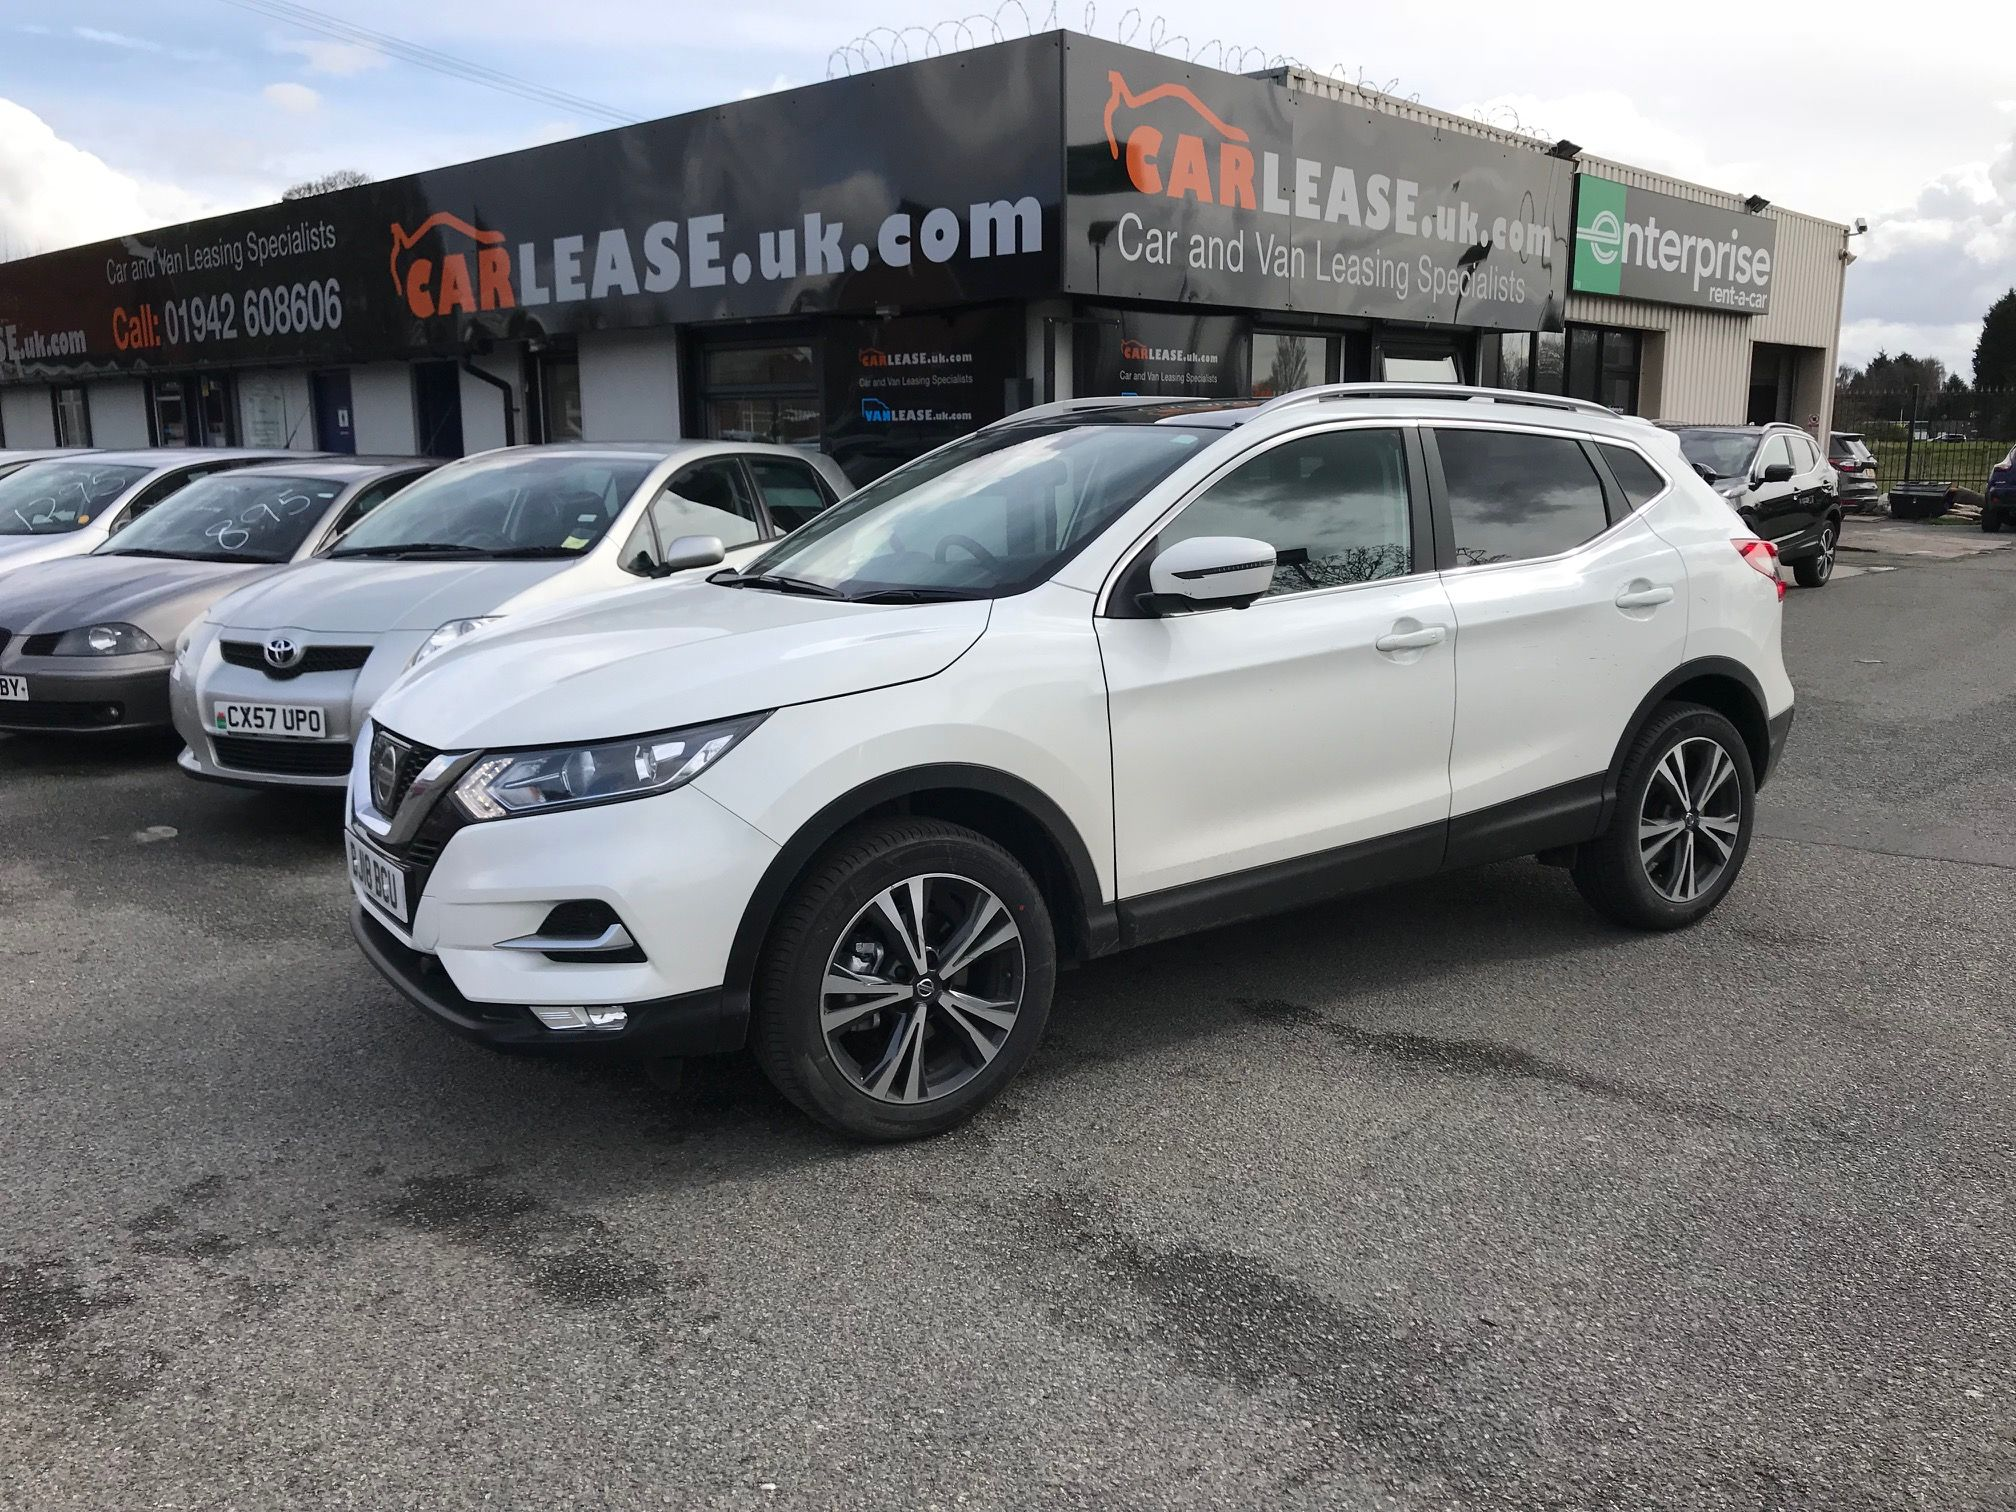 The Nissan Qashqai Diesel Hatchback 1 5 Dci N Connecta 5dr In White Cars Nissan Leasing Nissan Carleasing Nissan Nissan Qashqai Car Deals